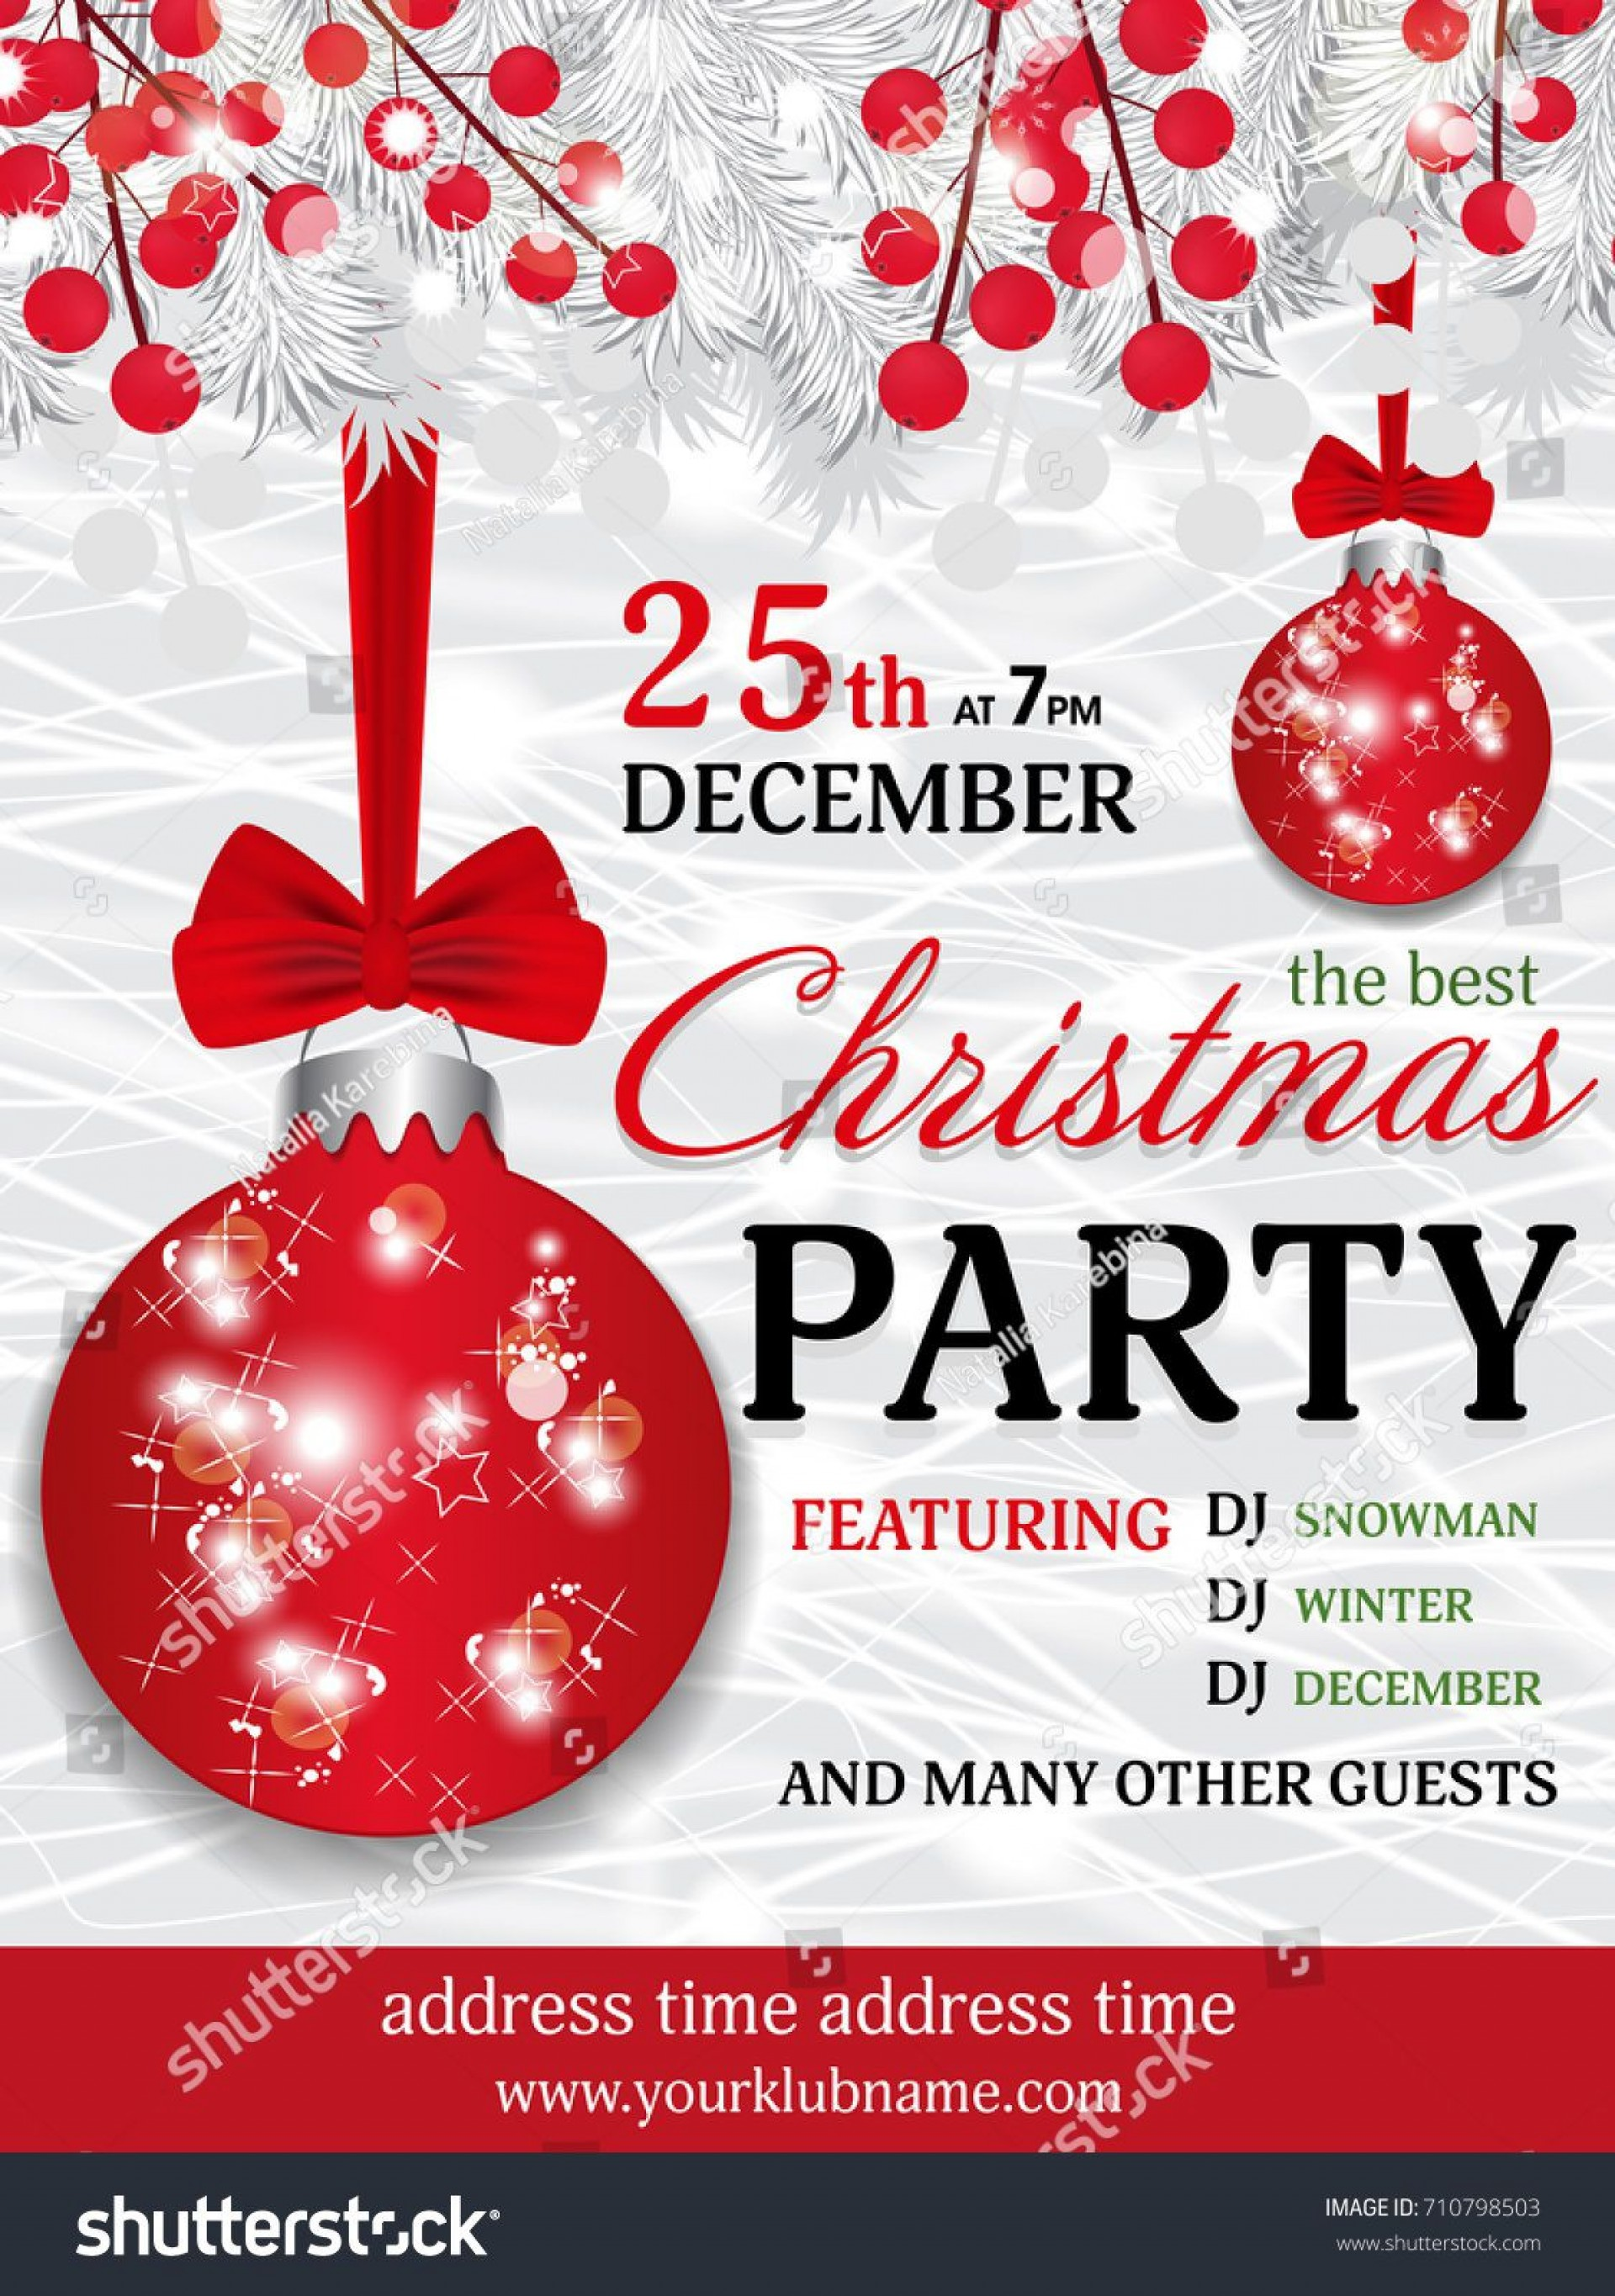 009 Wondrou Christma Party Invitation Template Design  Holiday Download Free Psd1920